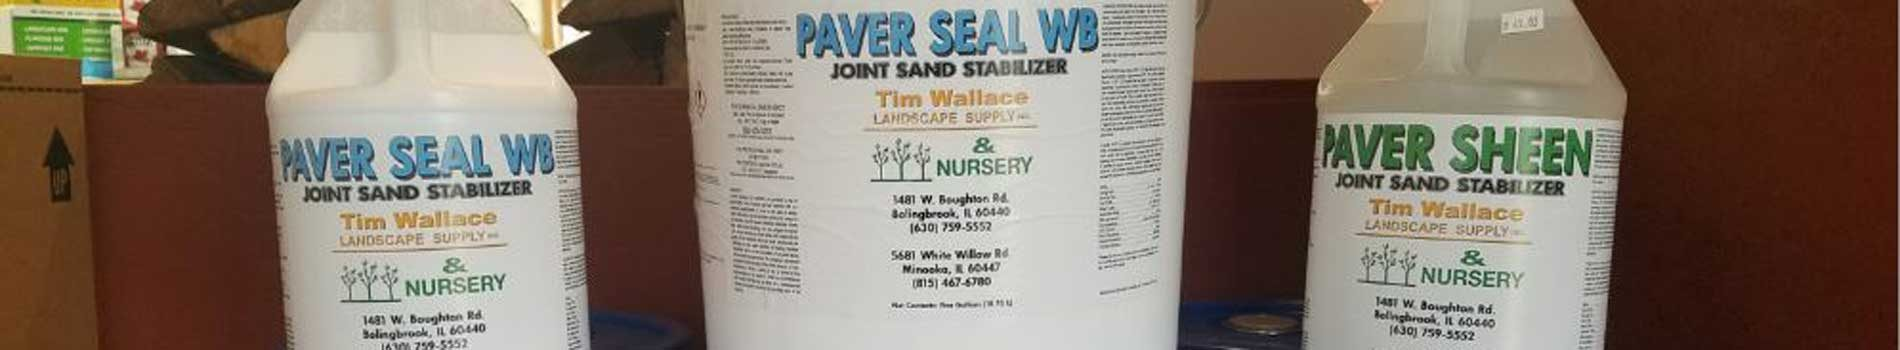 Paver Sealers, Cleaners, Paver Sands and Concrete Sealers